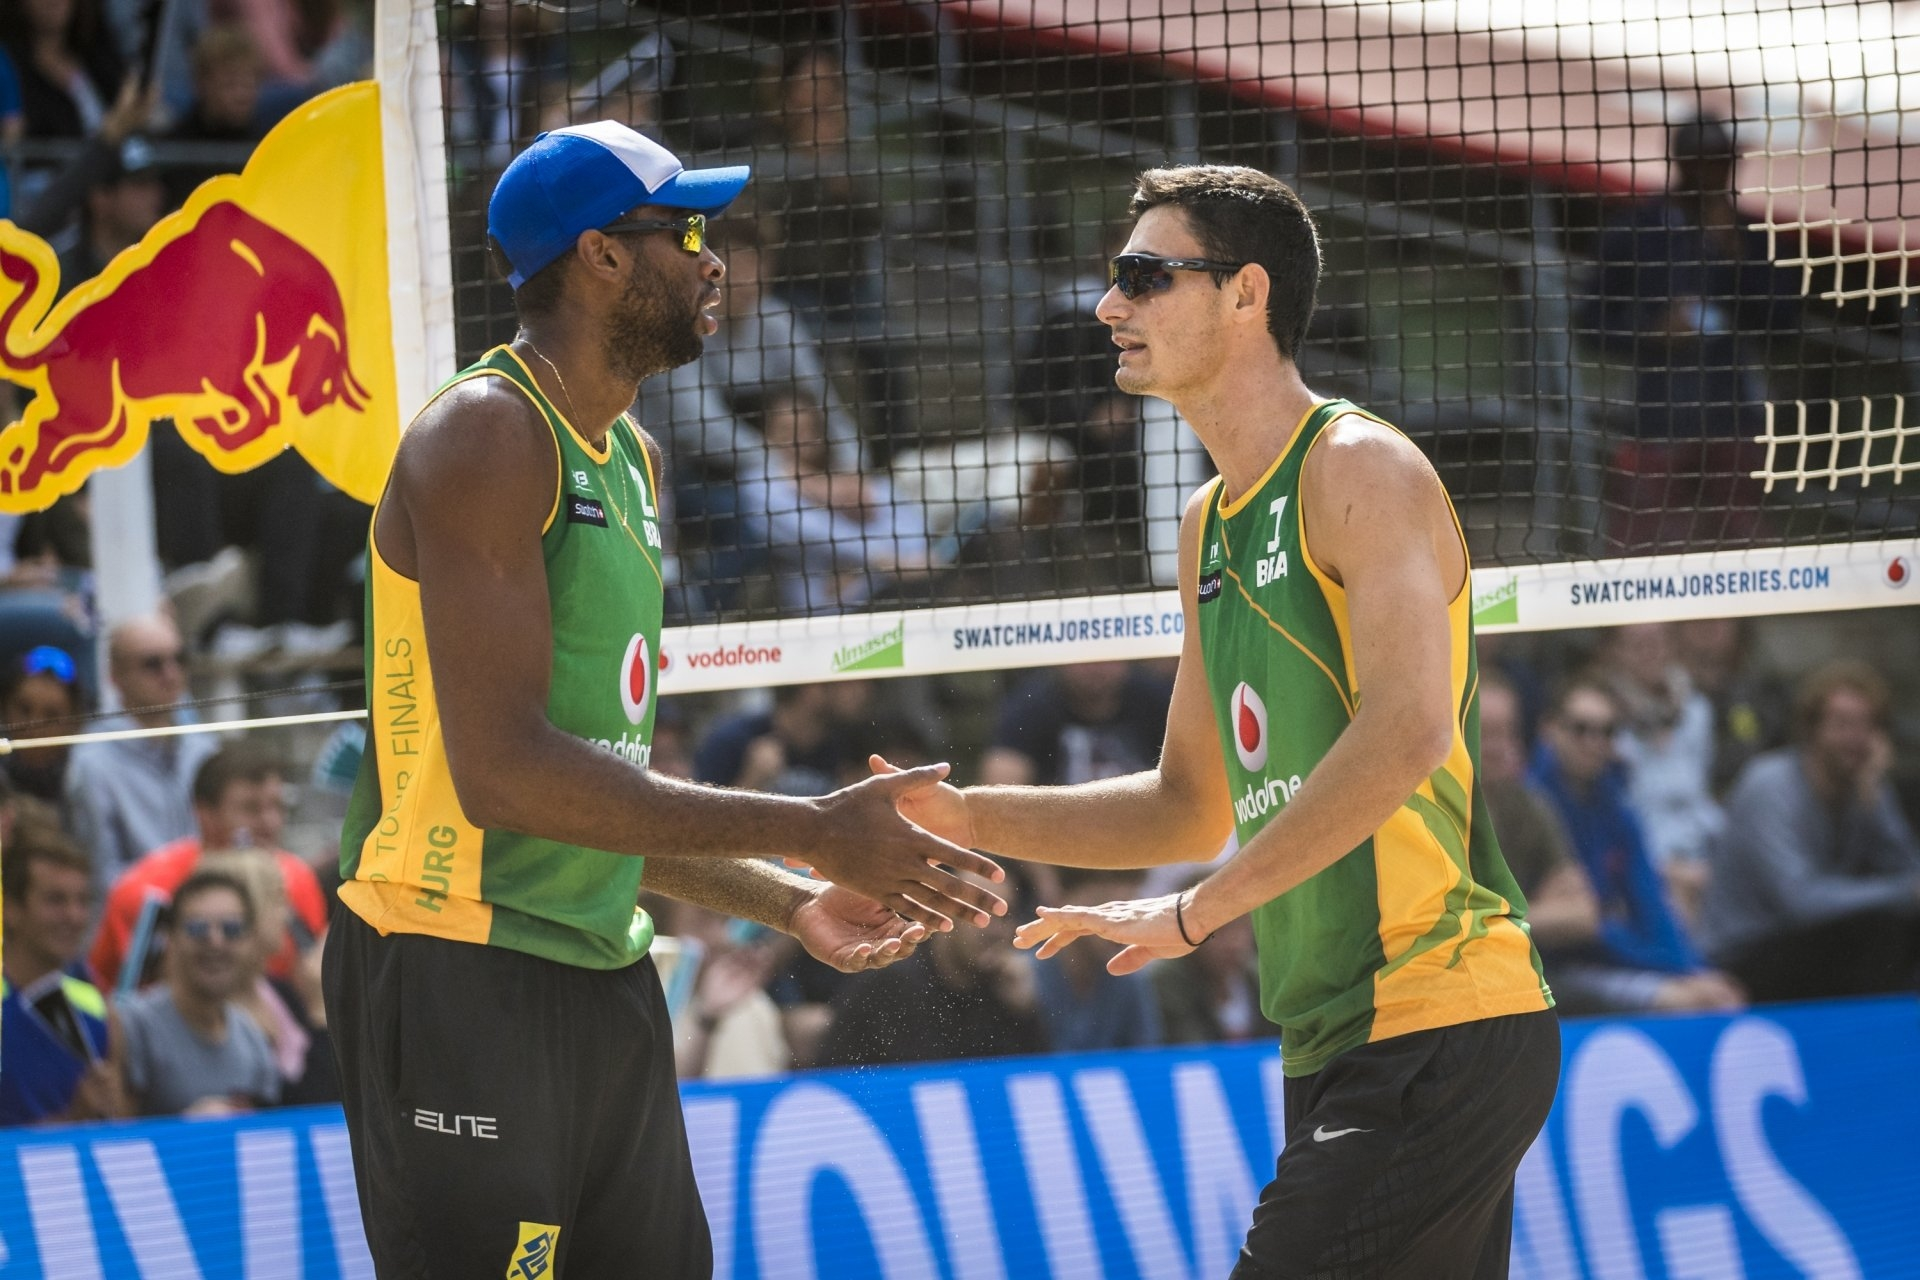 Evandro and Andre have won last year's World Championships and World Tour